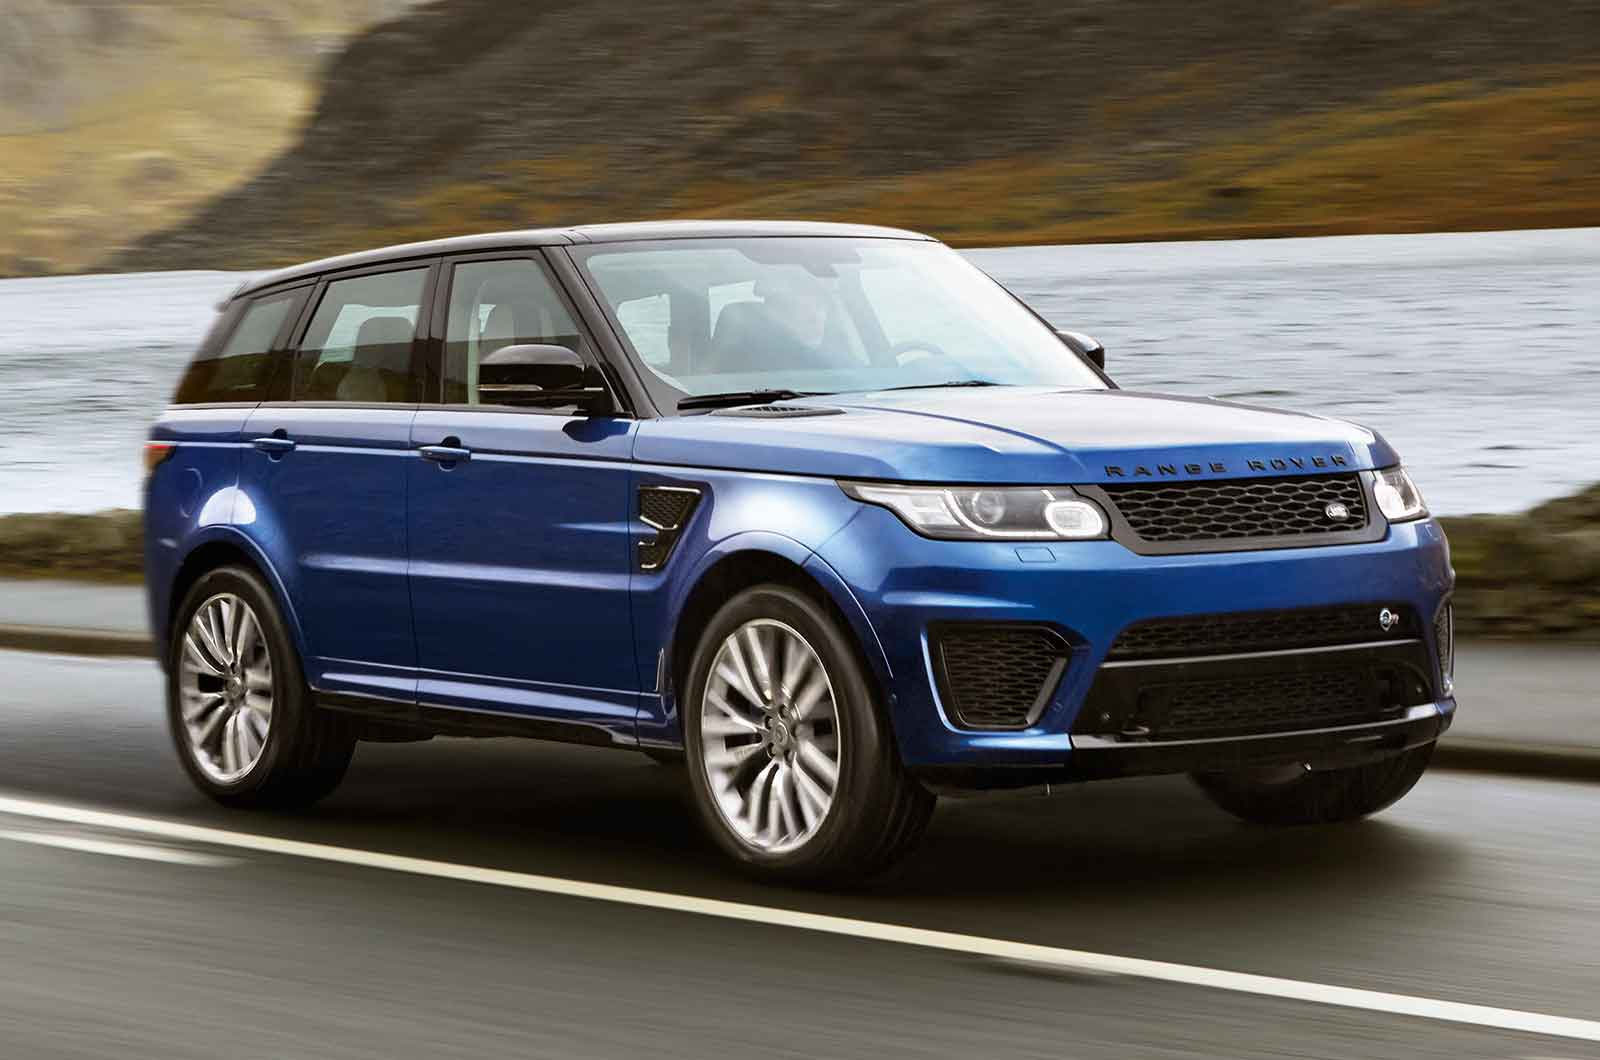 2015 range rover sport svr revealed photos 1 of 14. Black Bedroom Furniture Sets. Home Design Ideas